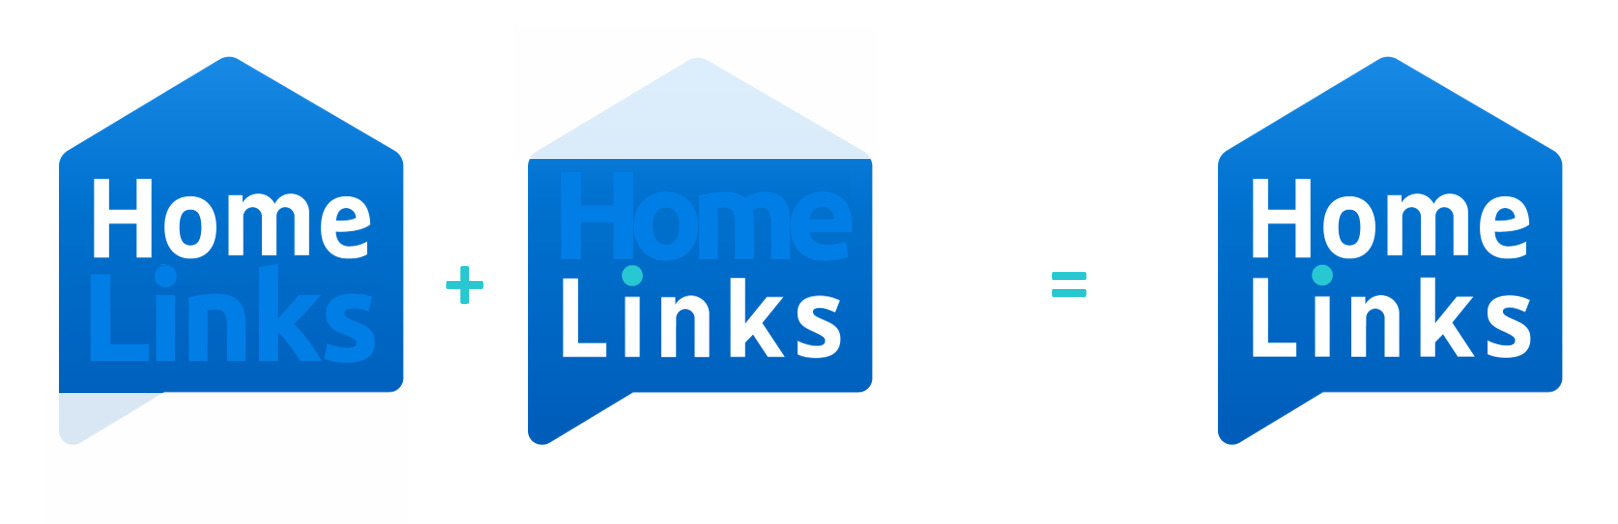 Construction du logo Homelinks